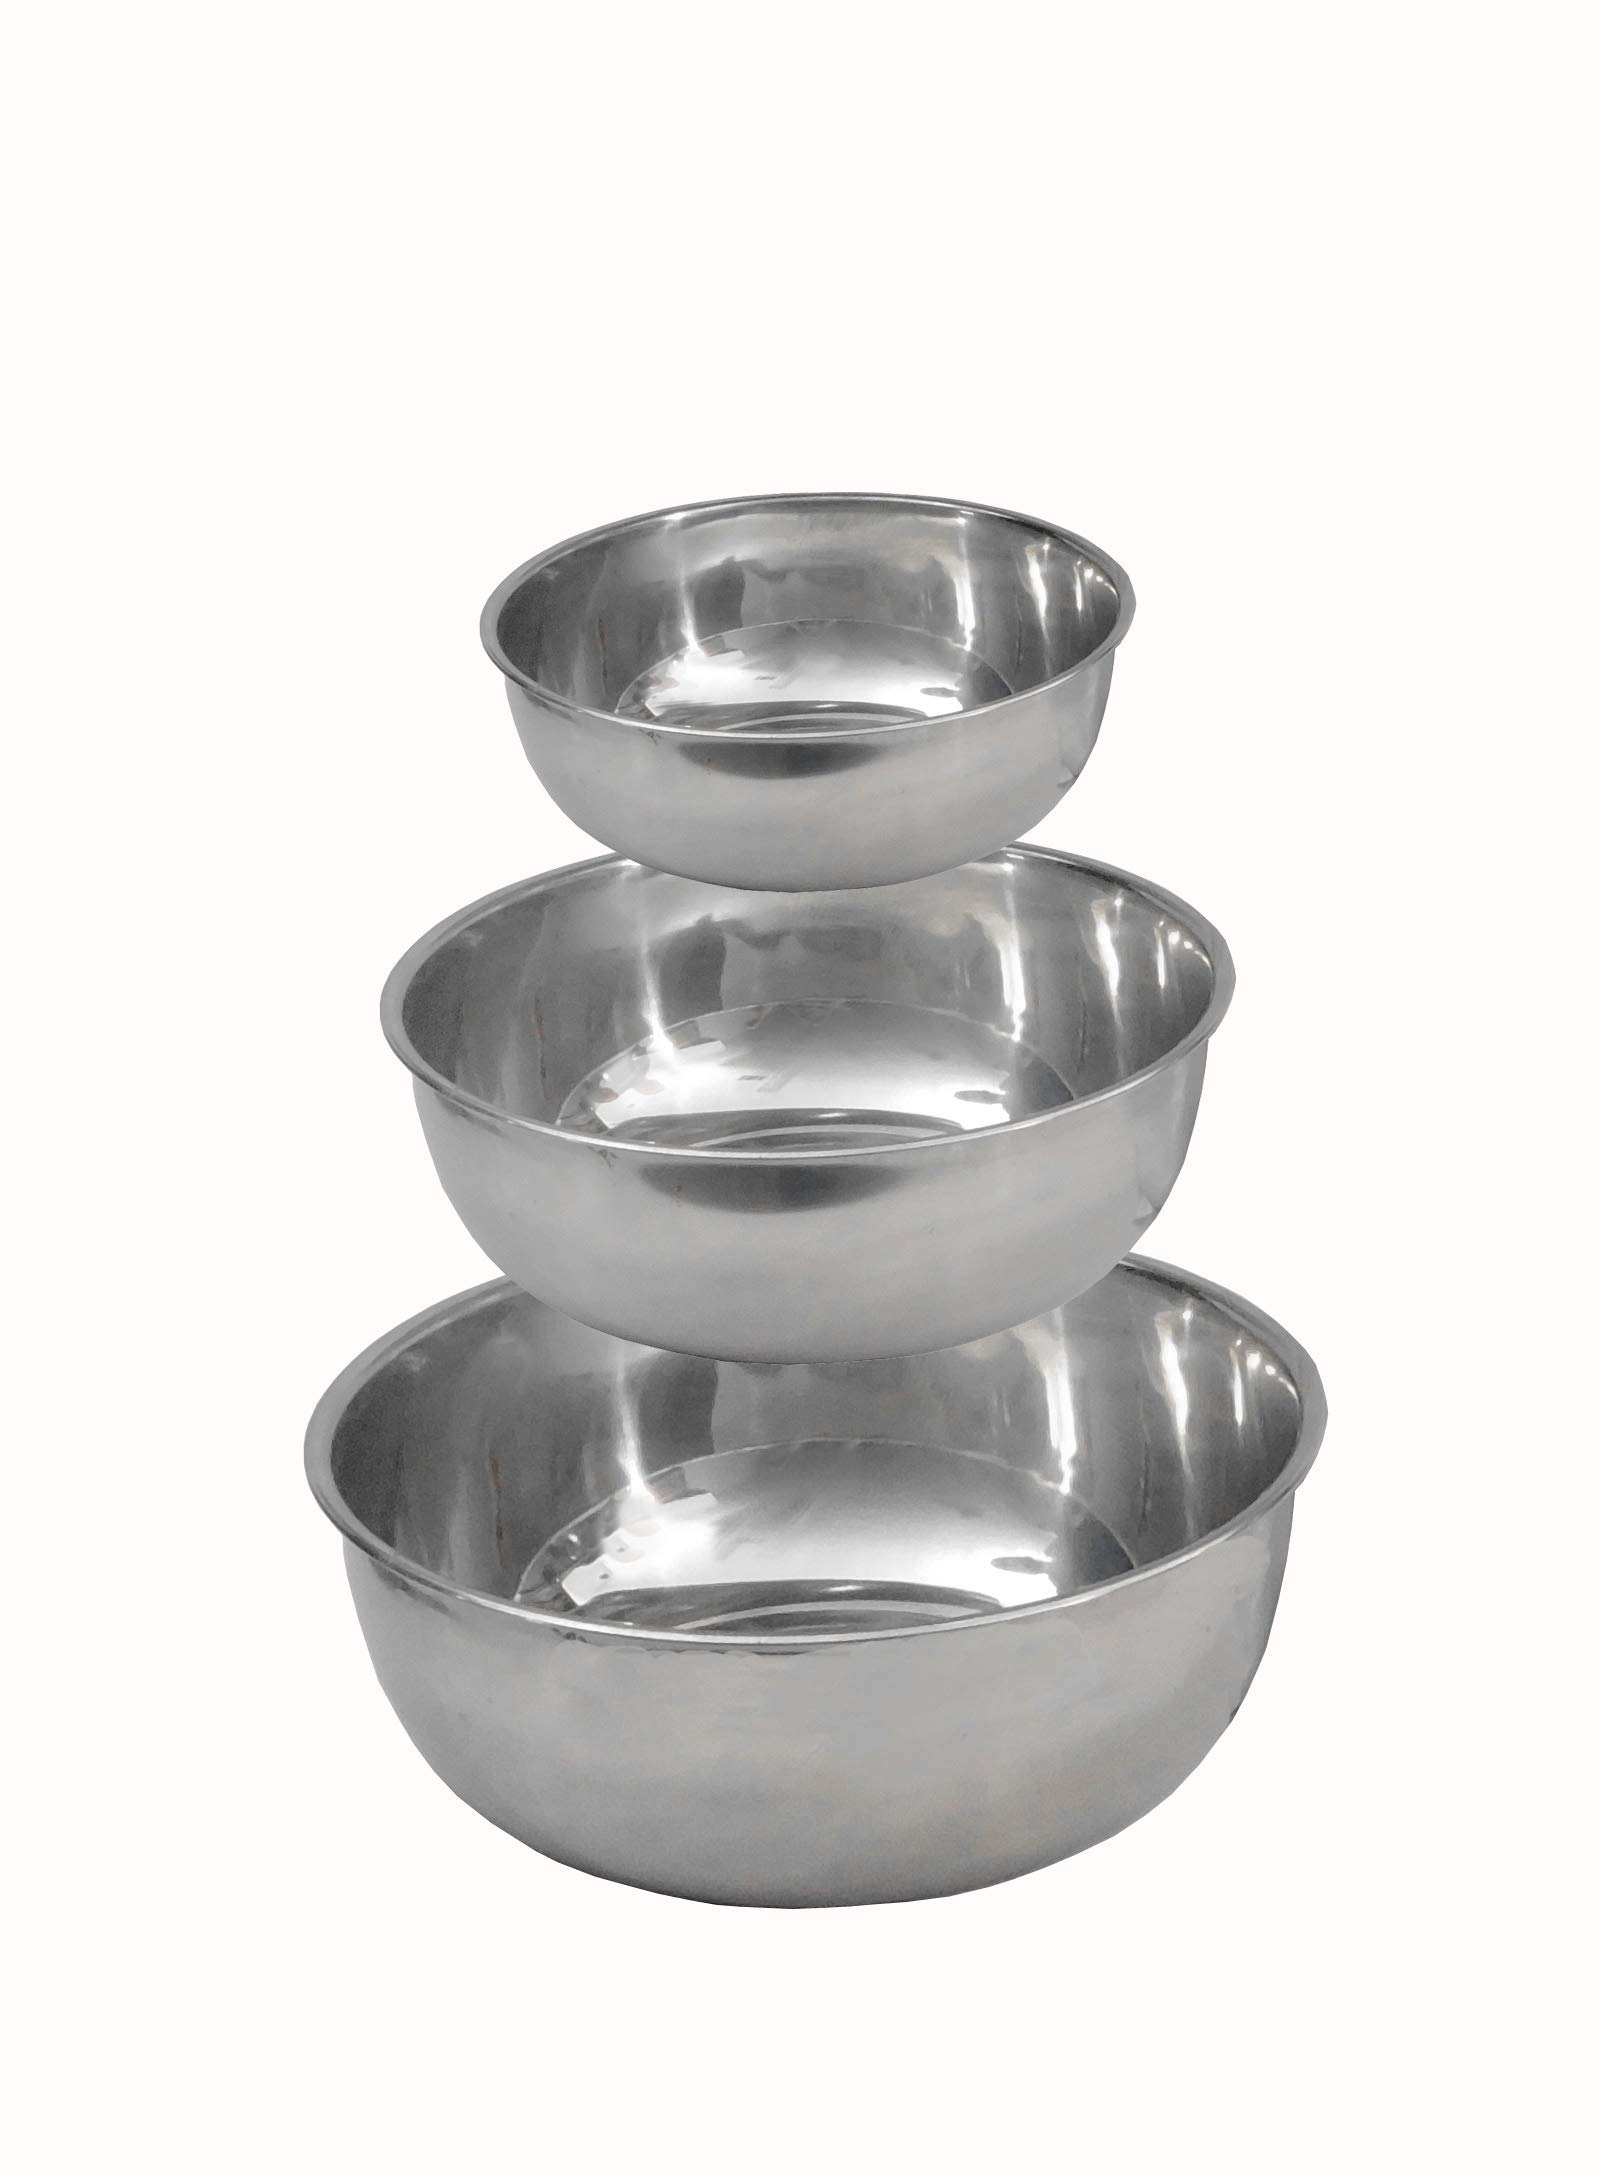 Stainless Steel Facial Machine Utility Bowls for Spa use- Set of 3 Small Medium Large